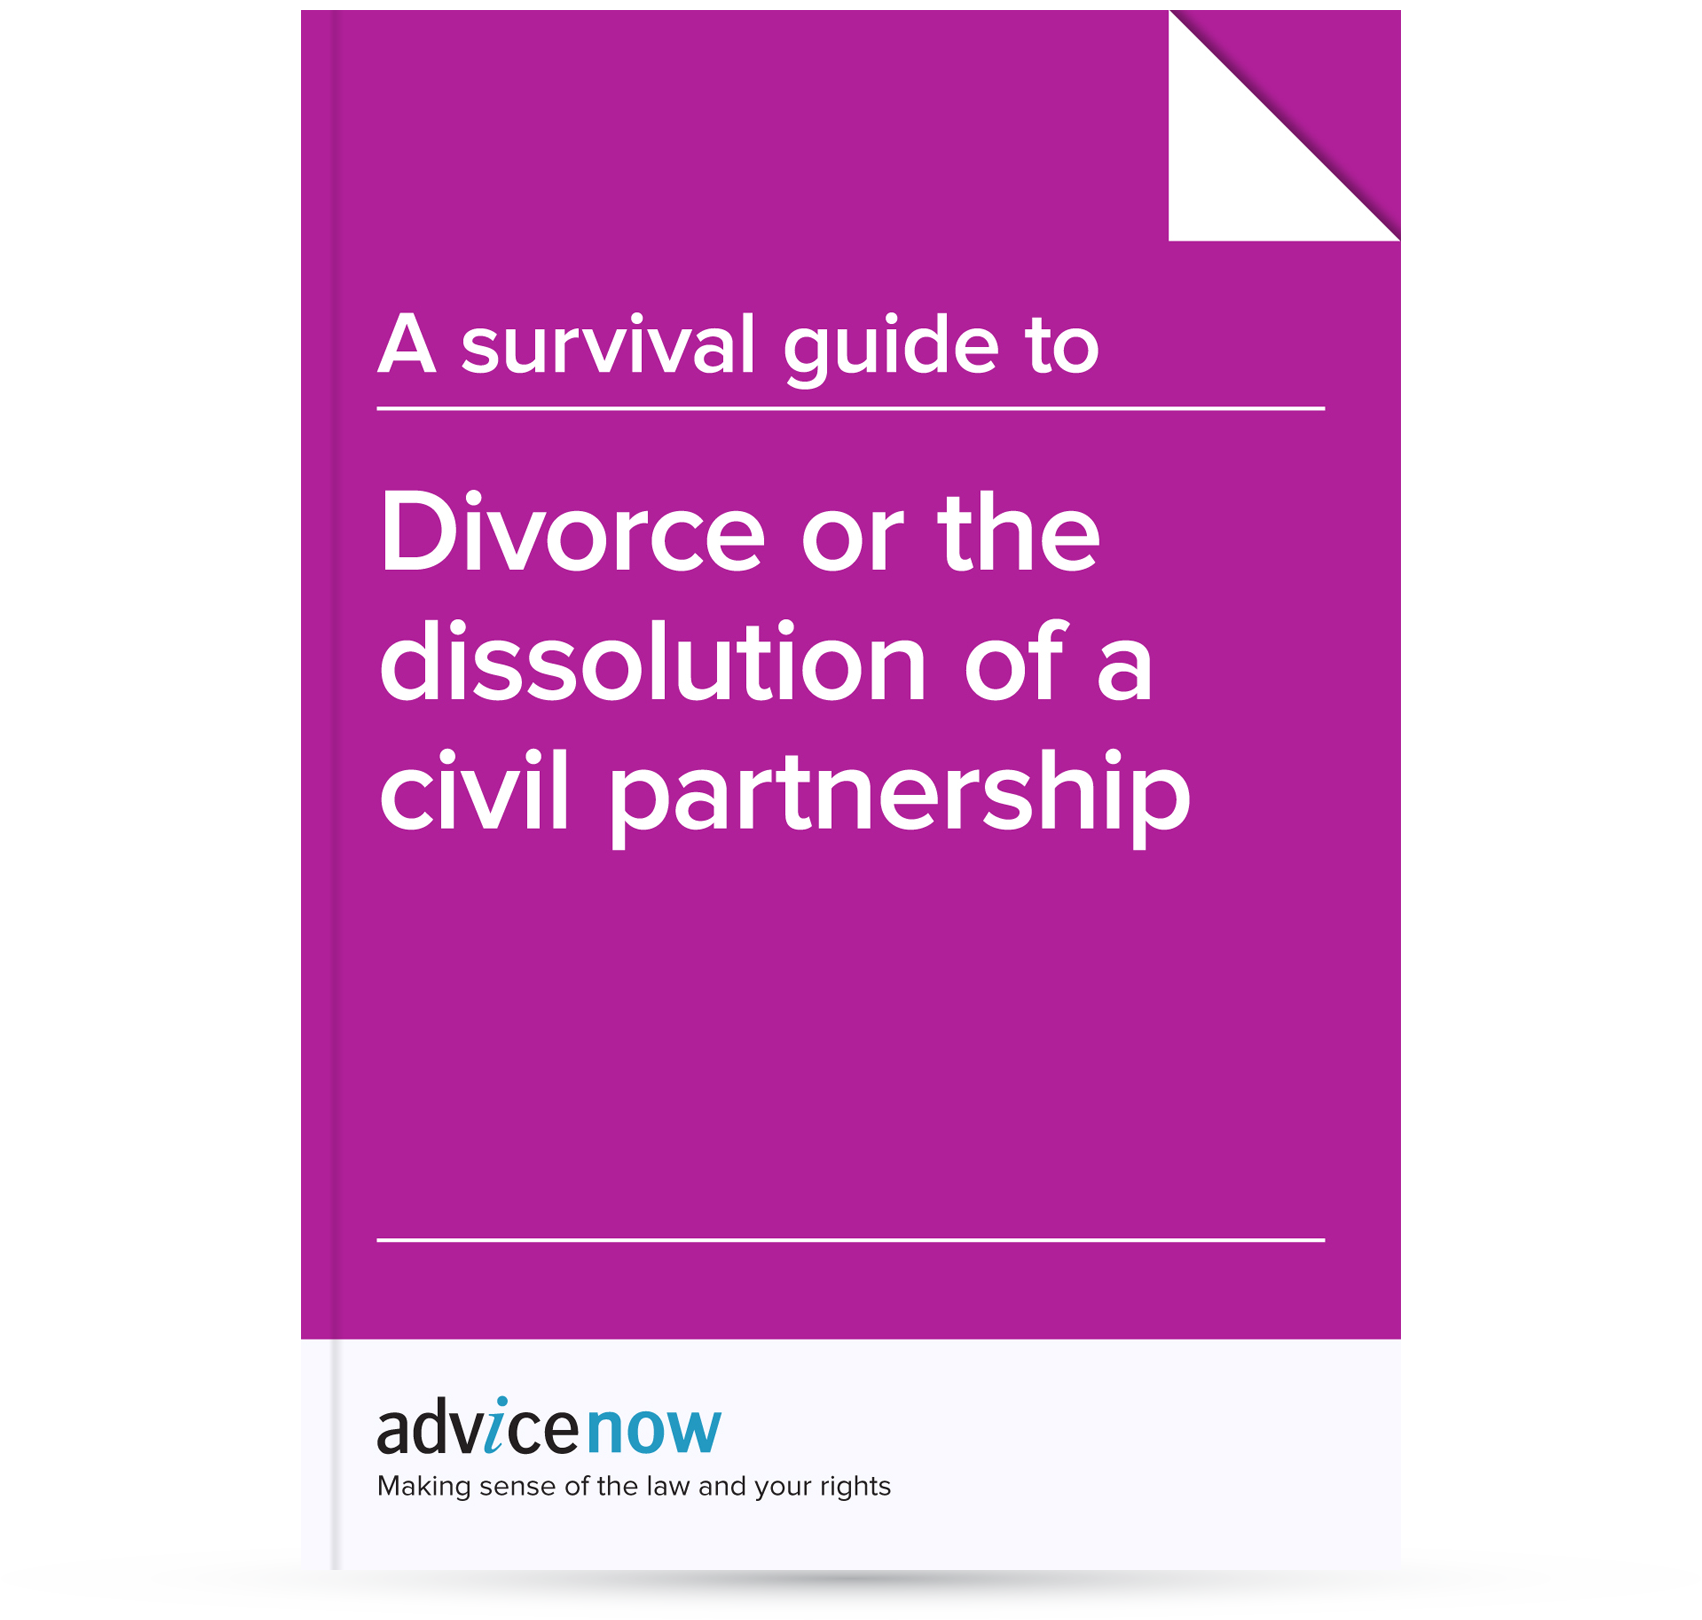 A survival guide to divorce or dissolution of a civil partnership a survival guide to divorce or dissolution of a civil partnership advicenow solutioingenieria